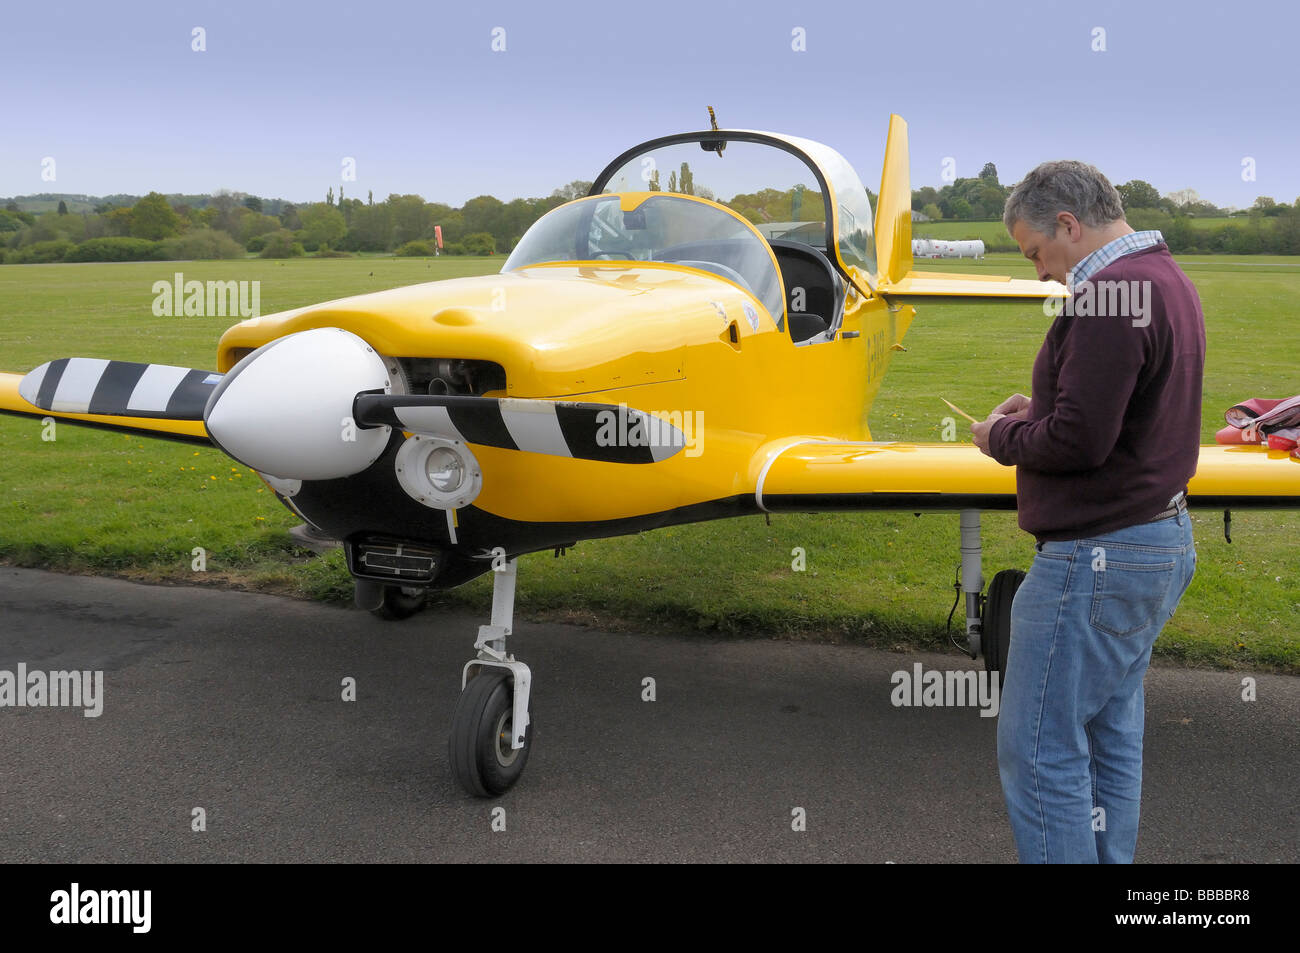 Pilot preparing for takeoff in Slingsby Firefly light aircraft at Redhill Surrey UK - Stock Image